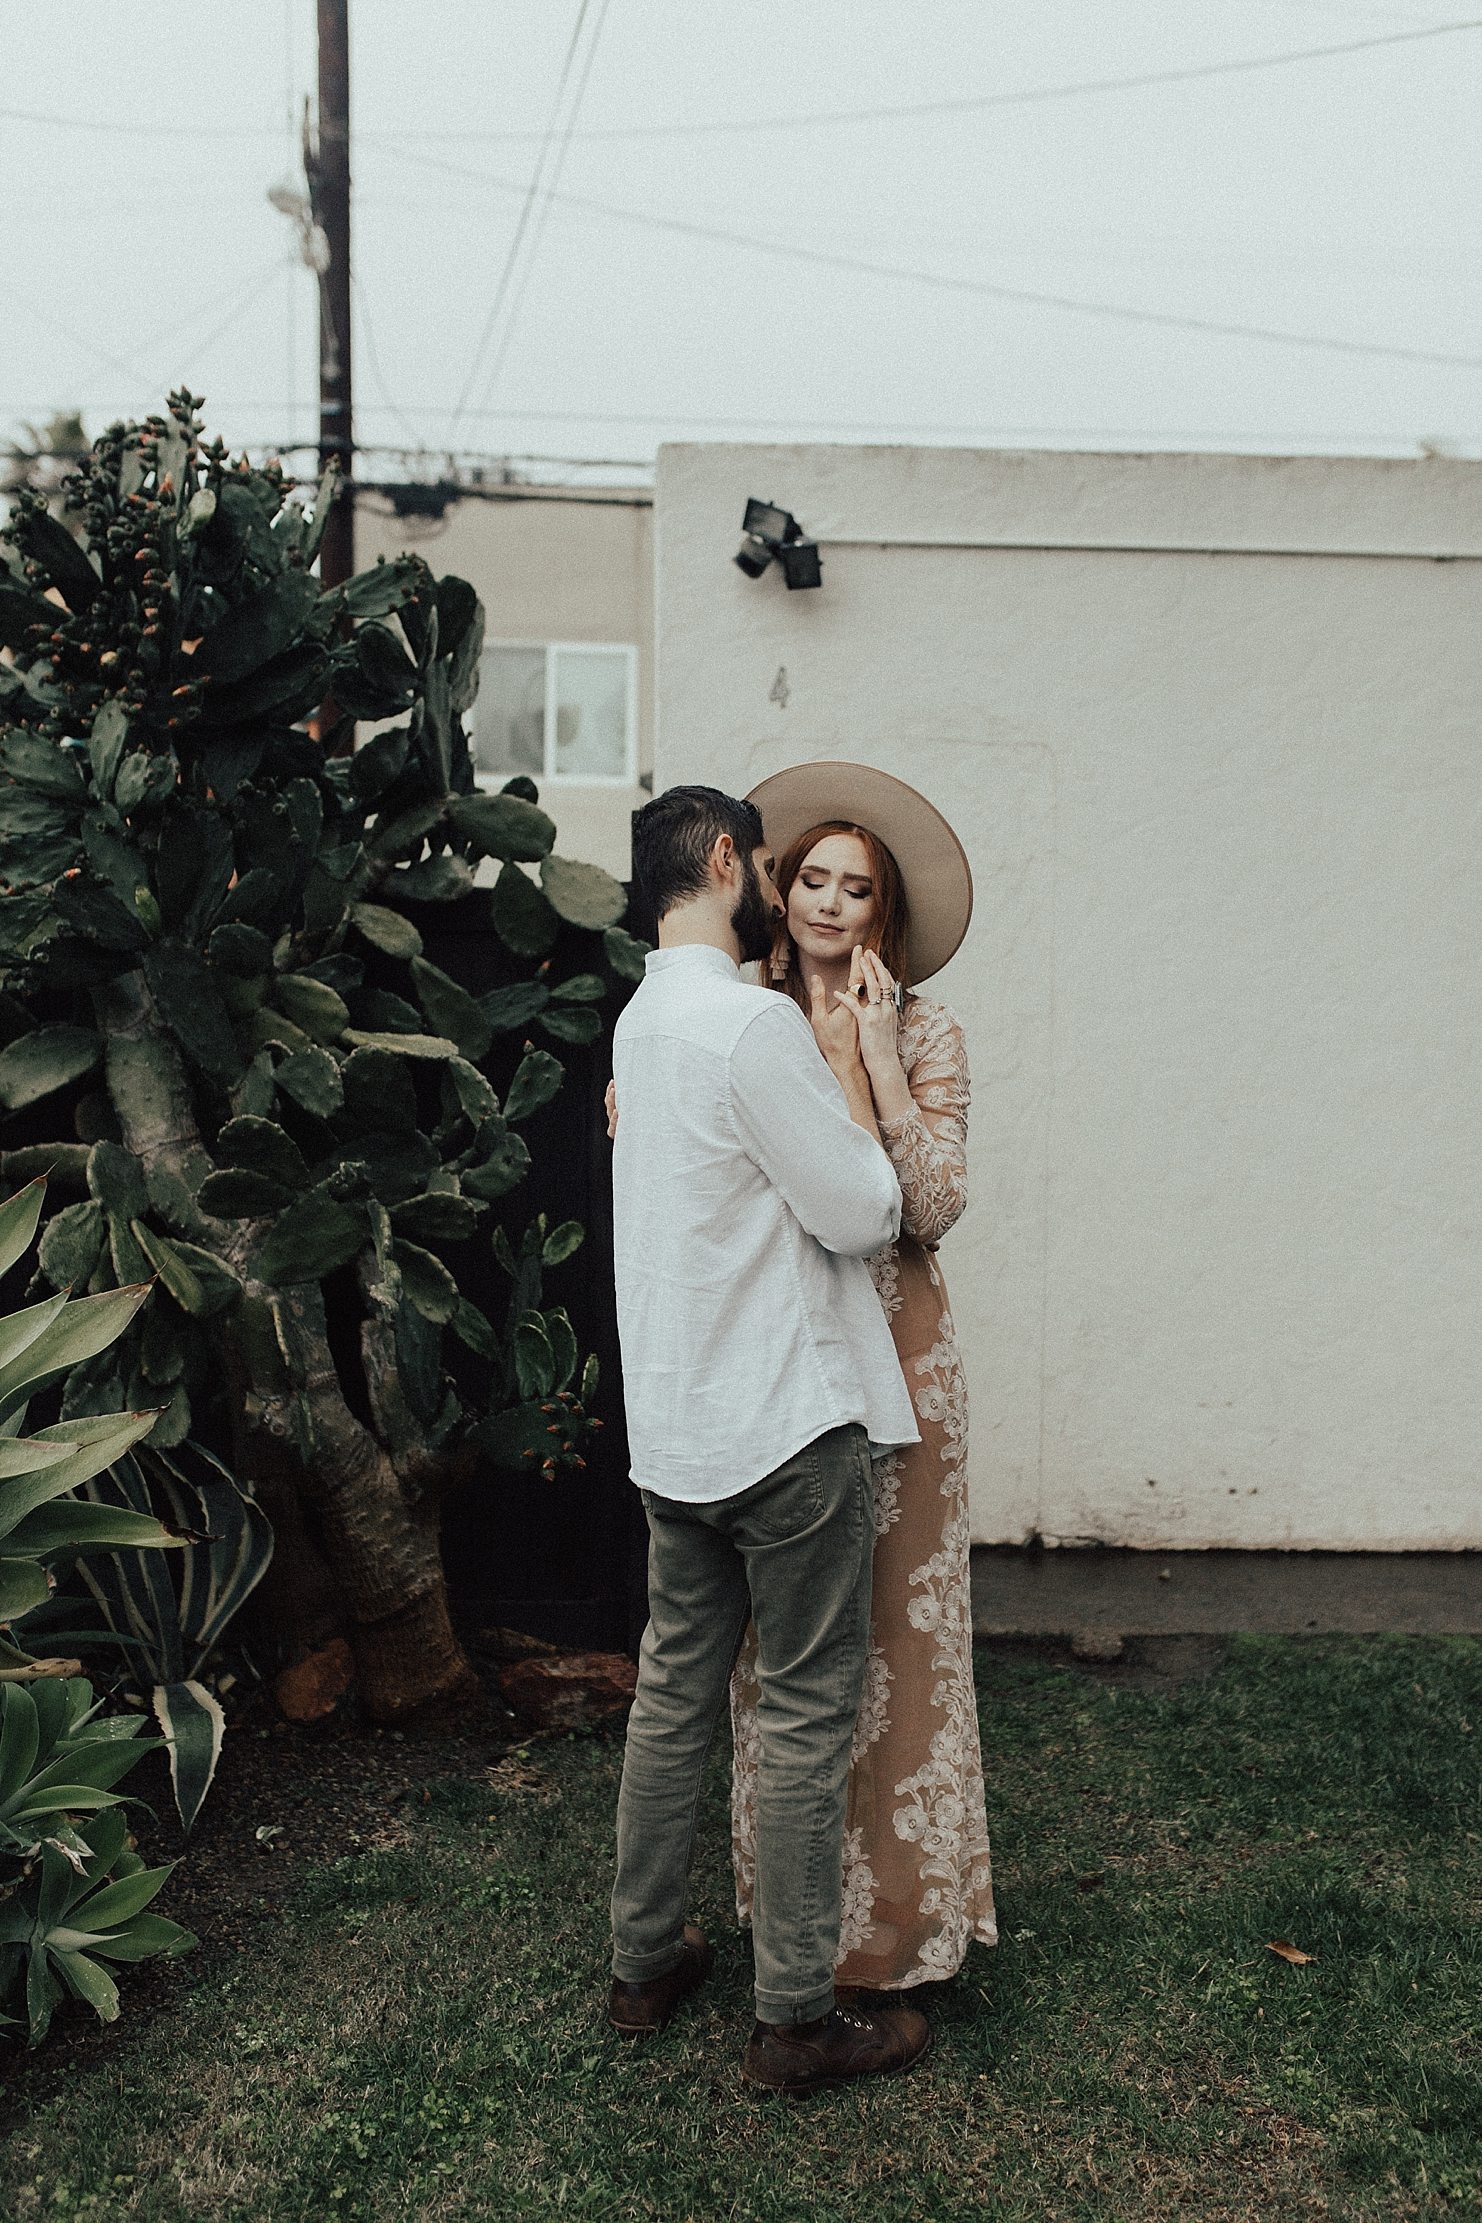 LONG BEACH ELOPEMENT INDIE BRIDE BOHO LOS ANGELES PHOTOGRAPHER RACHEL WAKEFIELD LA ELOPEMENT PHOTOGRAPHER-91.jpg